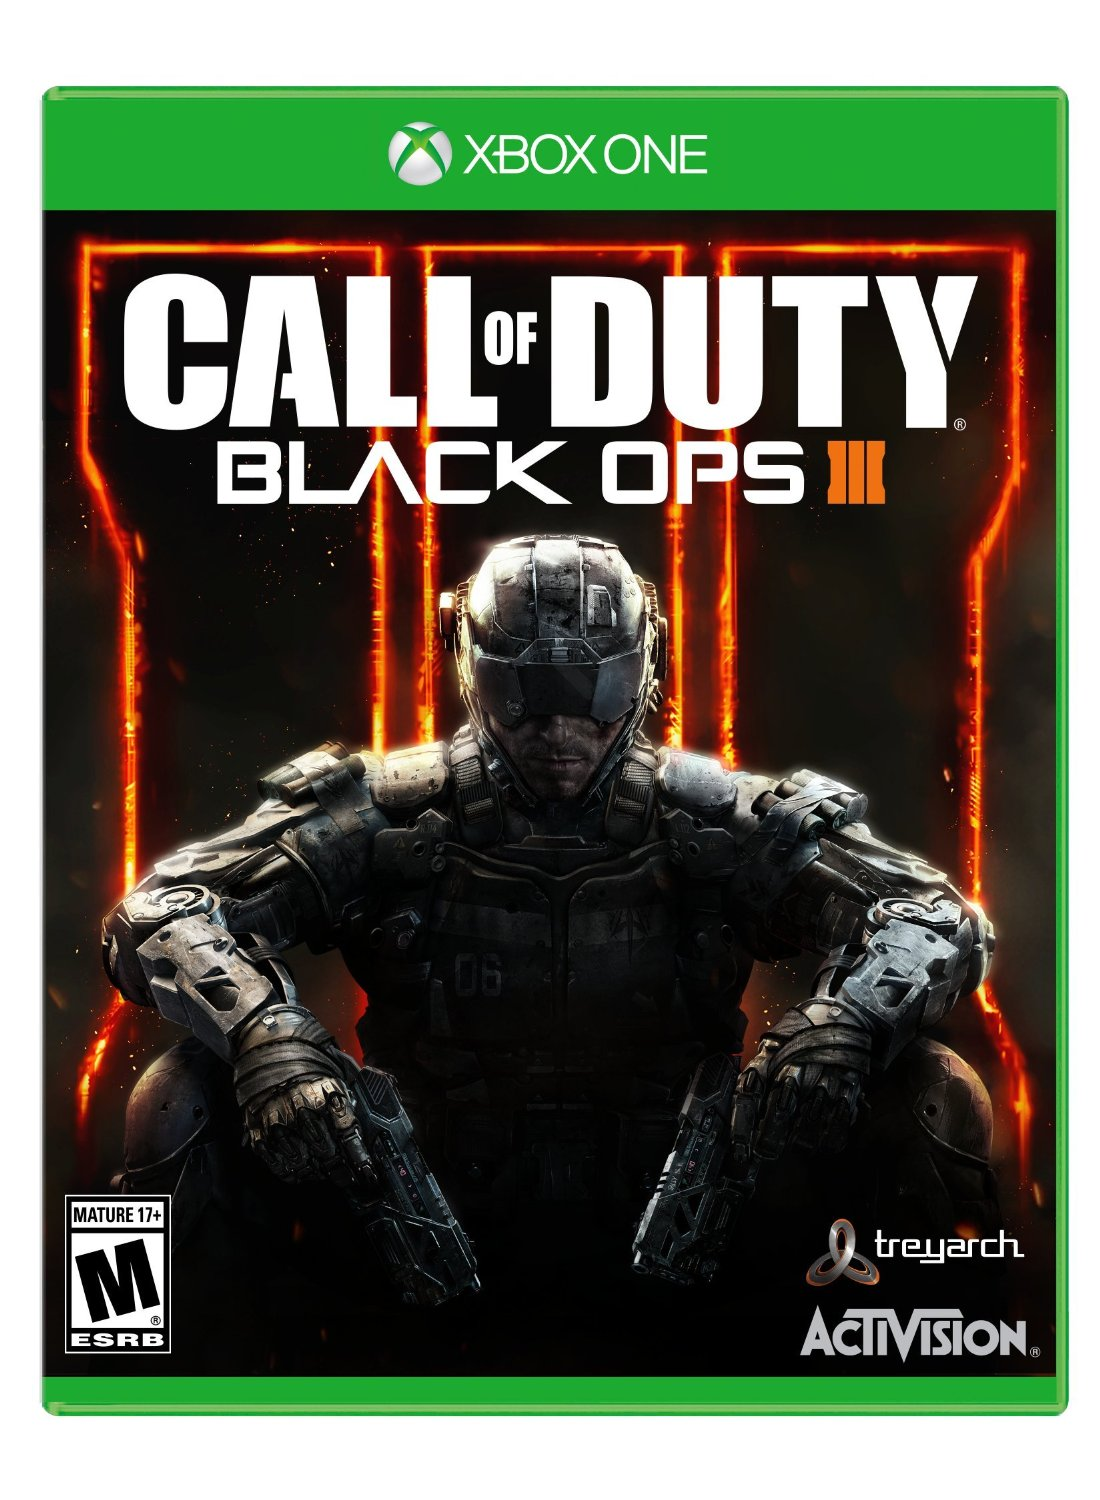 COD 3 Call of Duty: Black Ops III BO3 for XBOX ONE